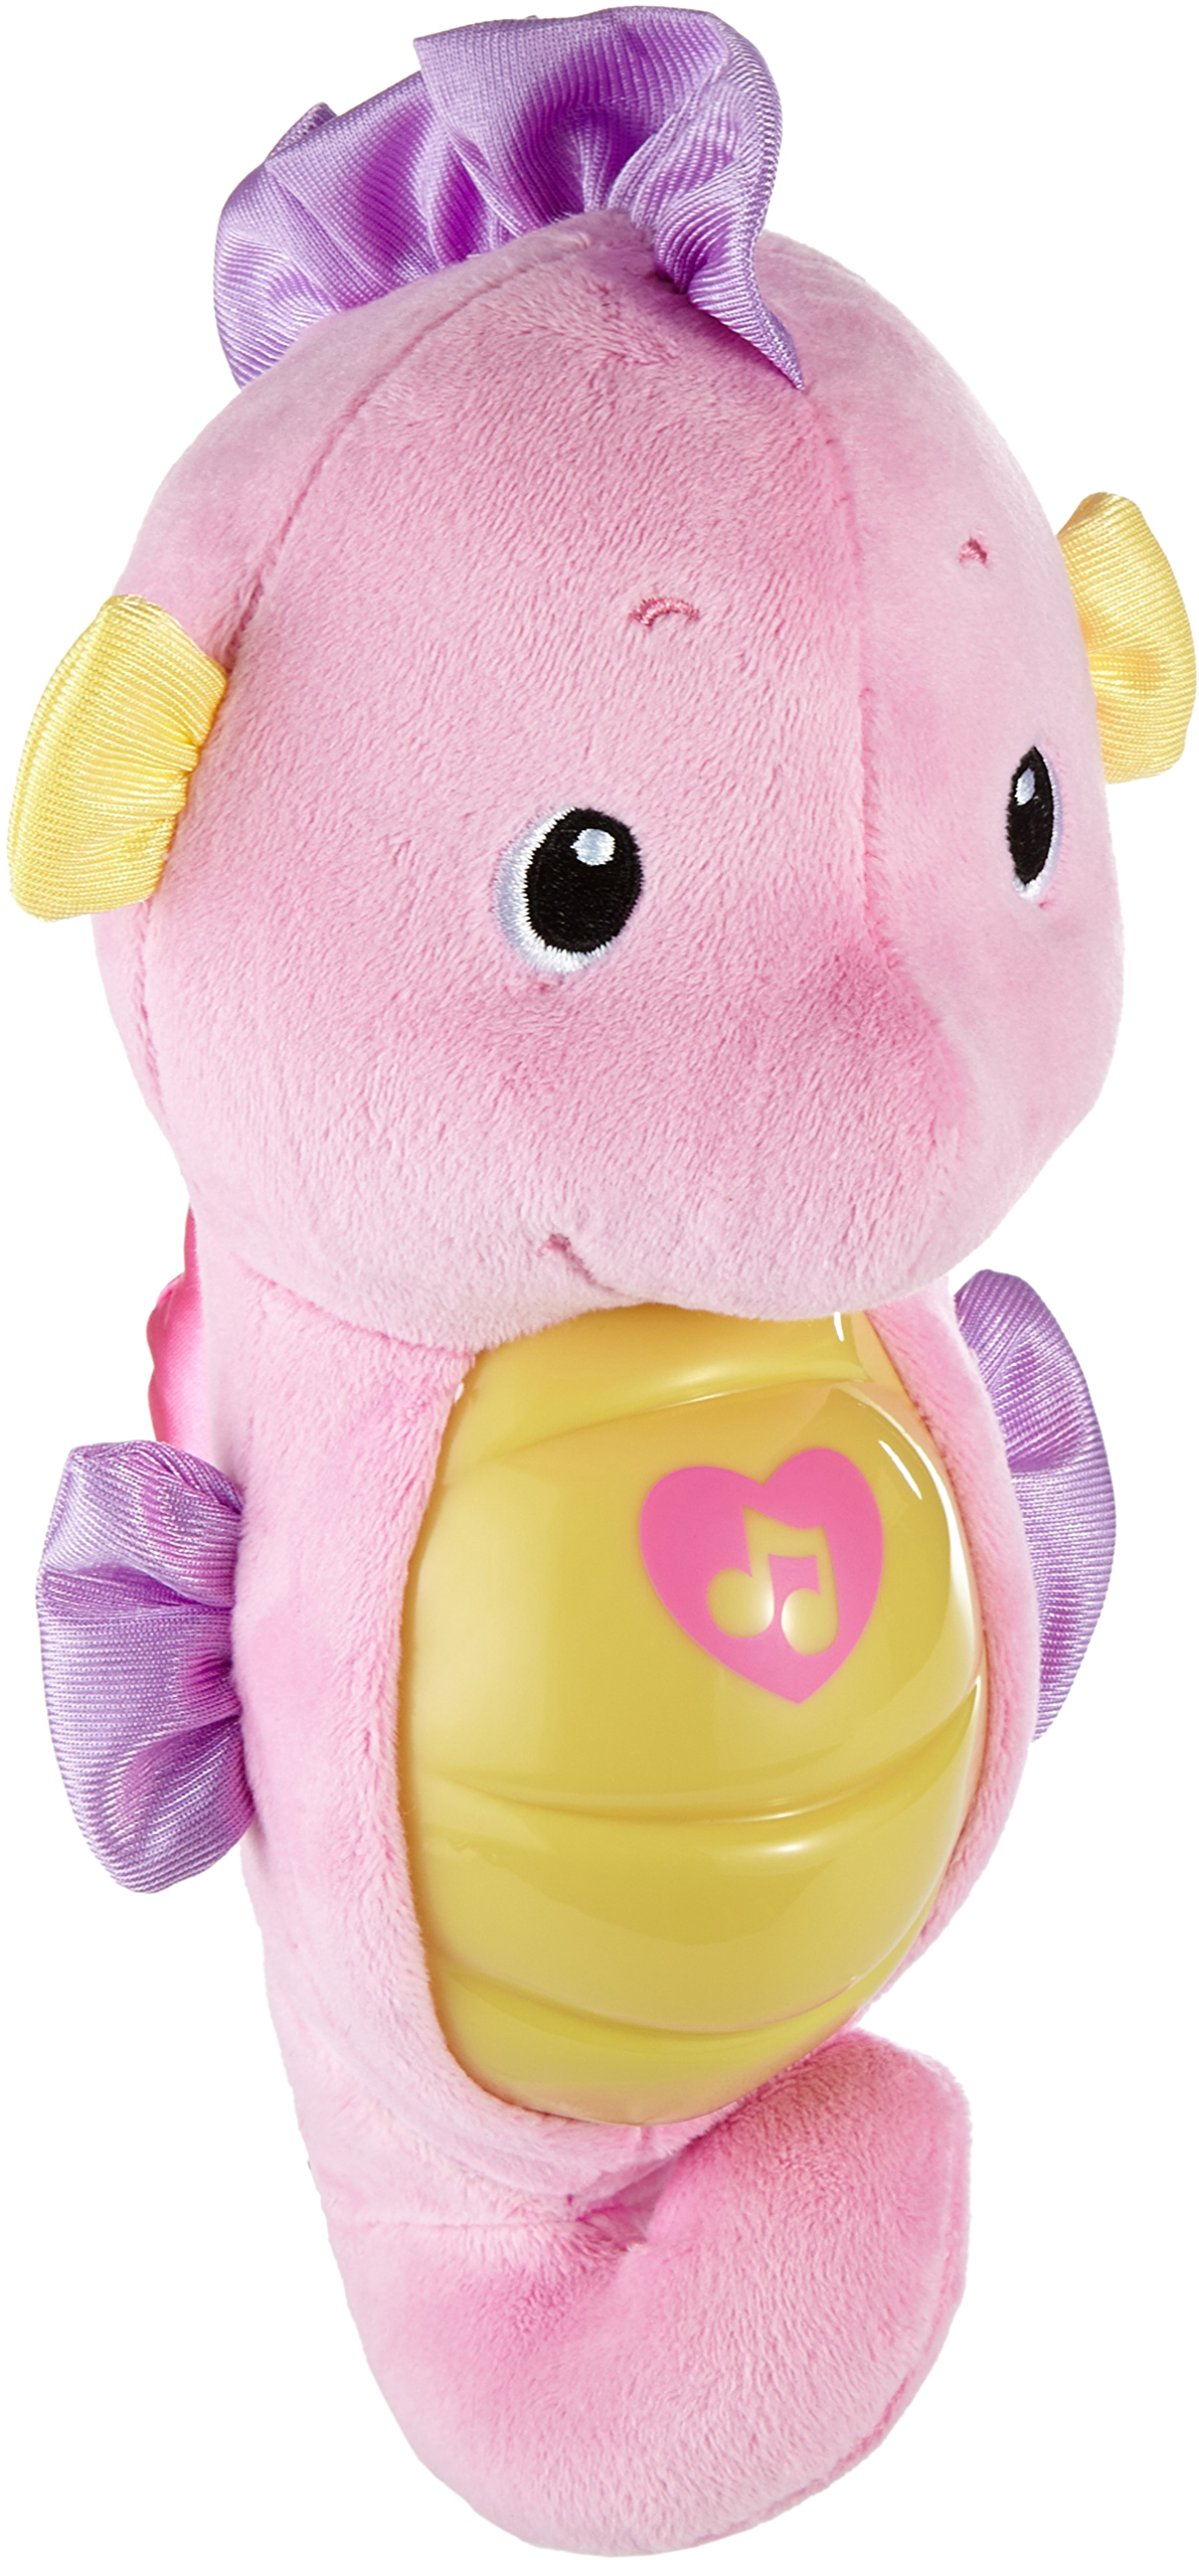 Fisher-Price Soothe & Glow Seahorse, Pink by Fisher-Price (Image #1)